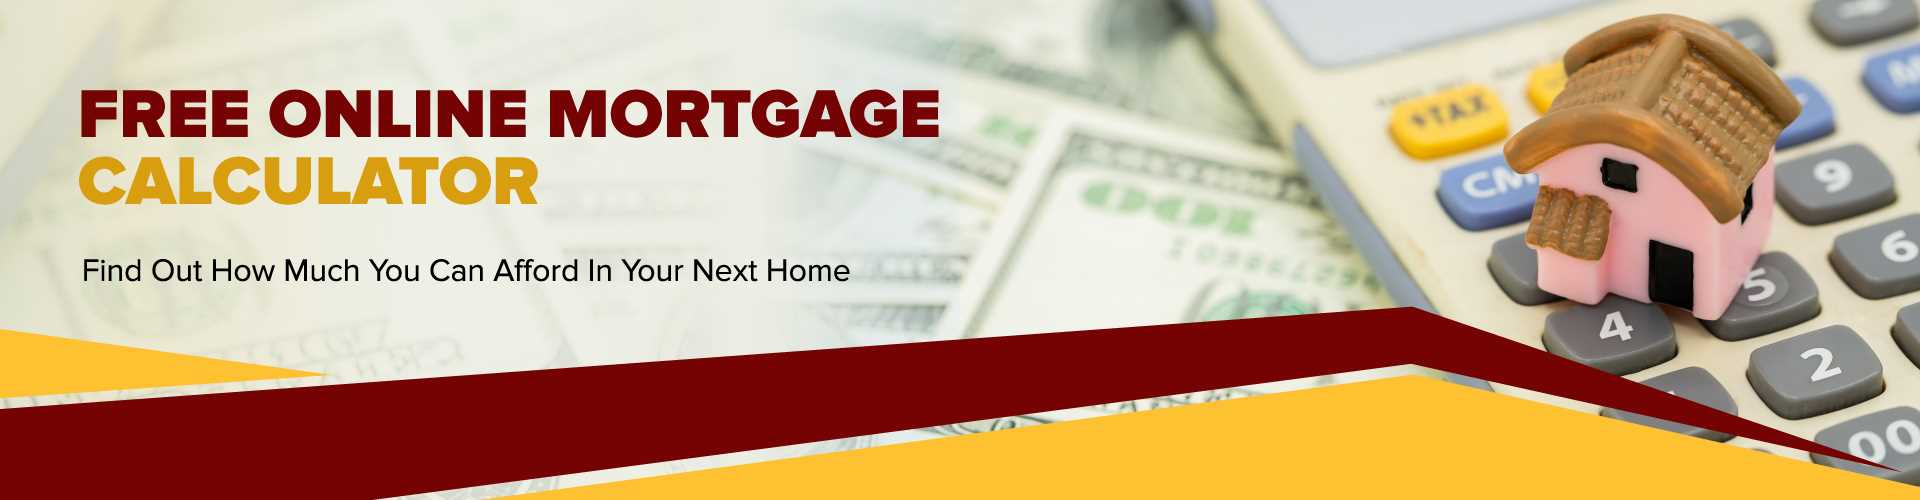 Find Out How Much You Can Afford in Your Next Home Image